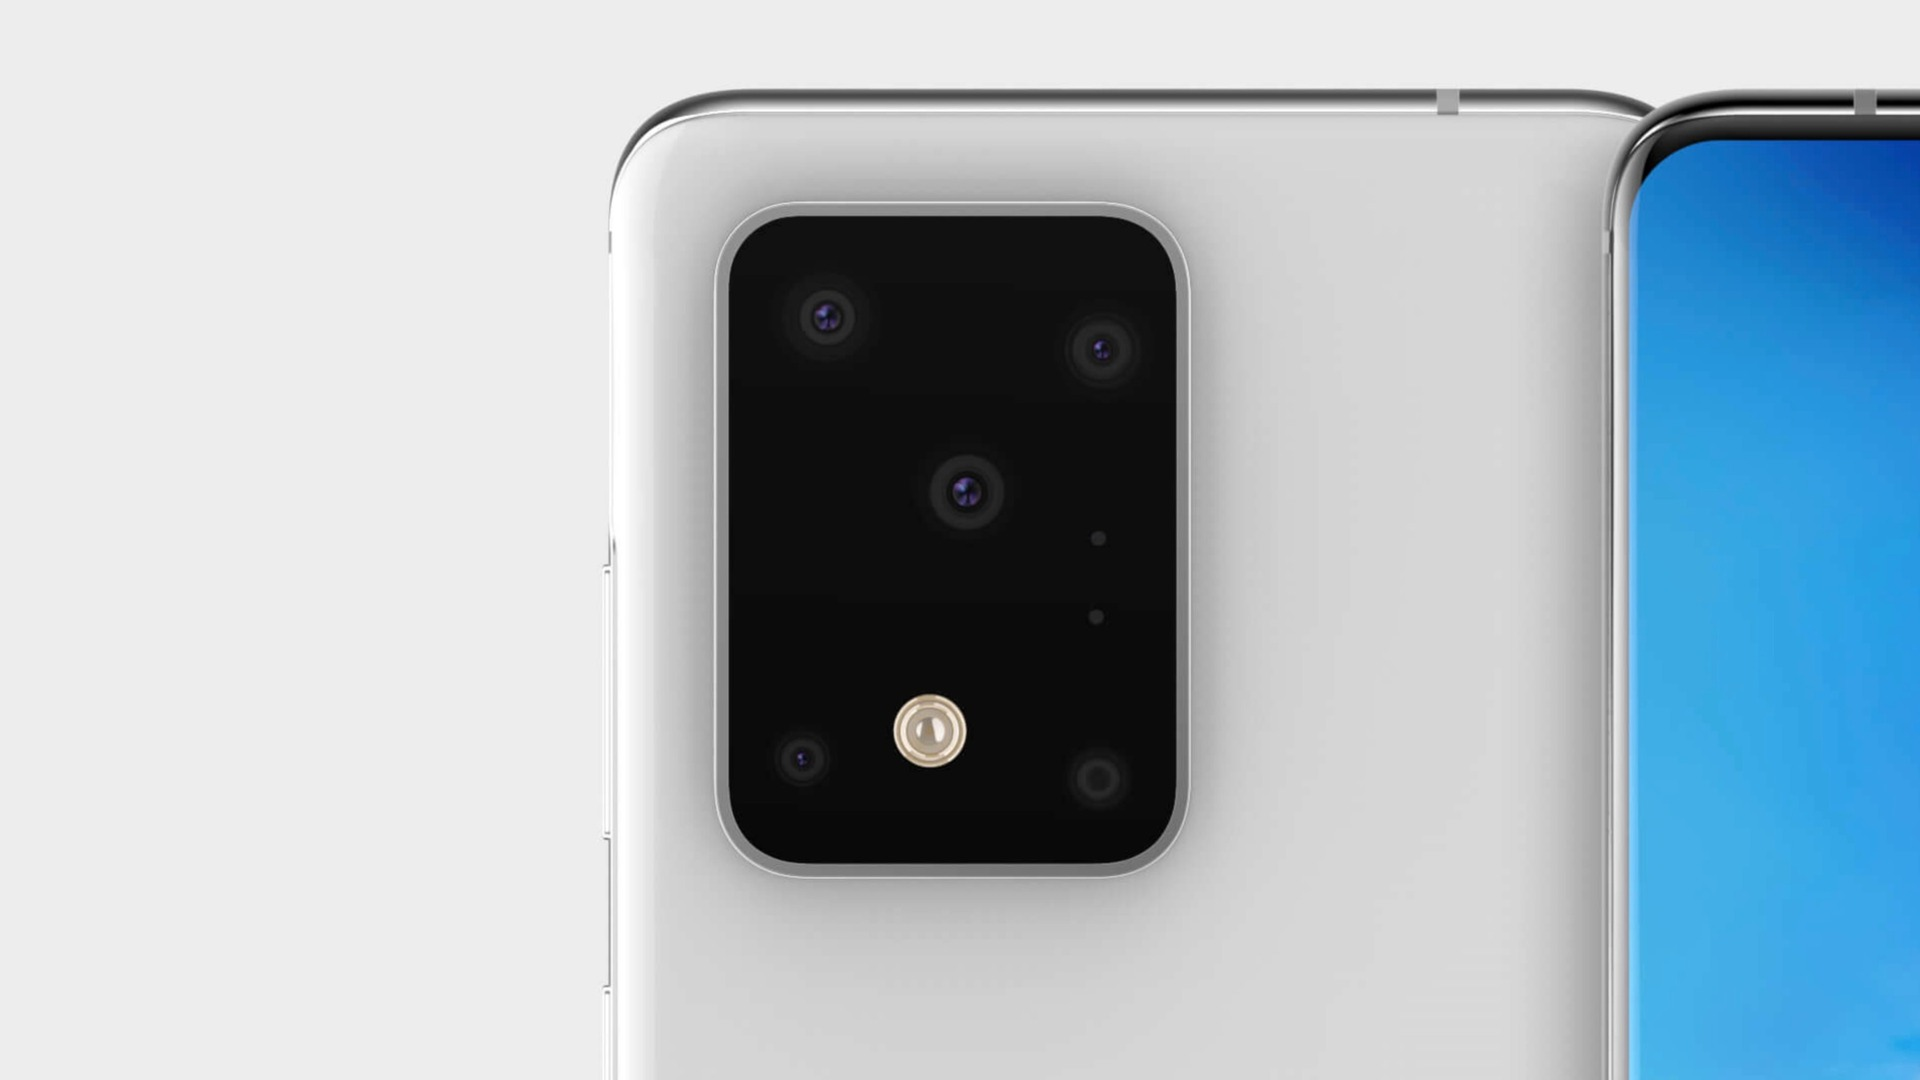 Samsung galaxy s11 camera module design